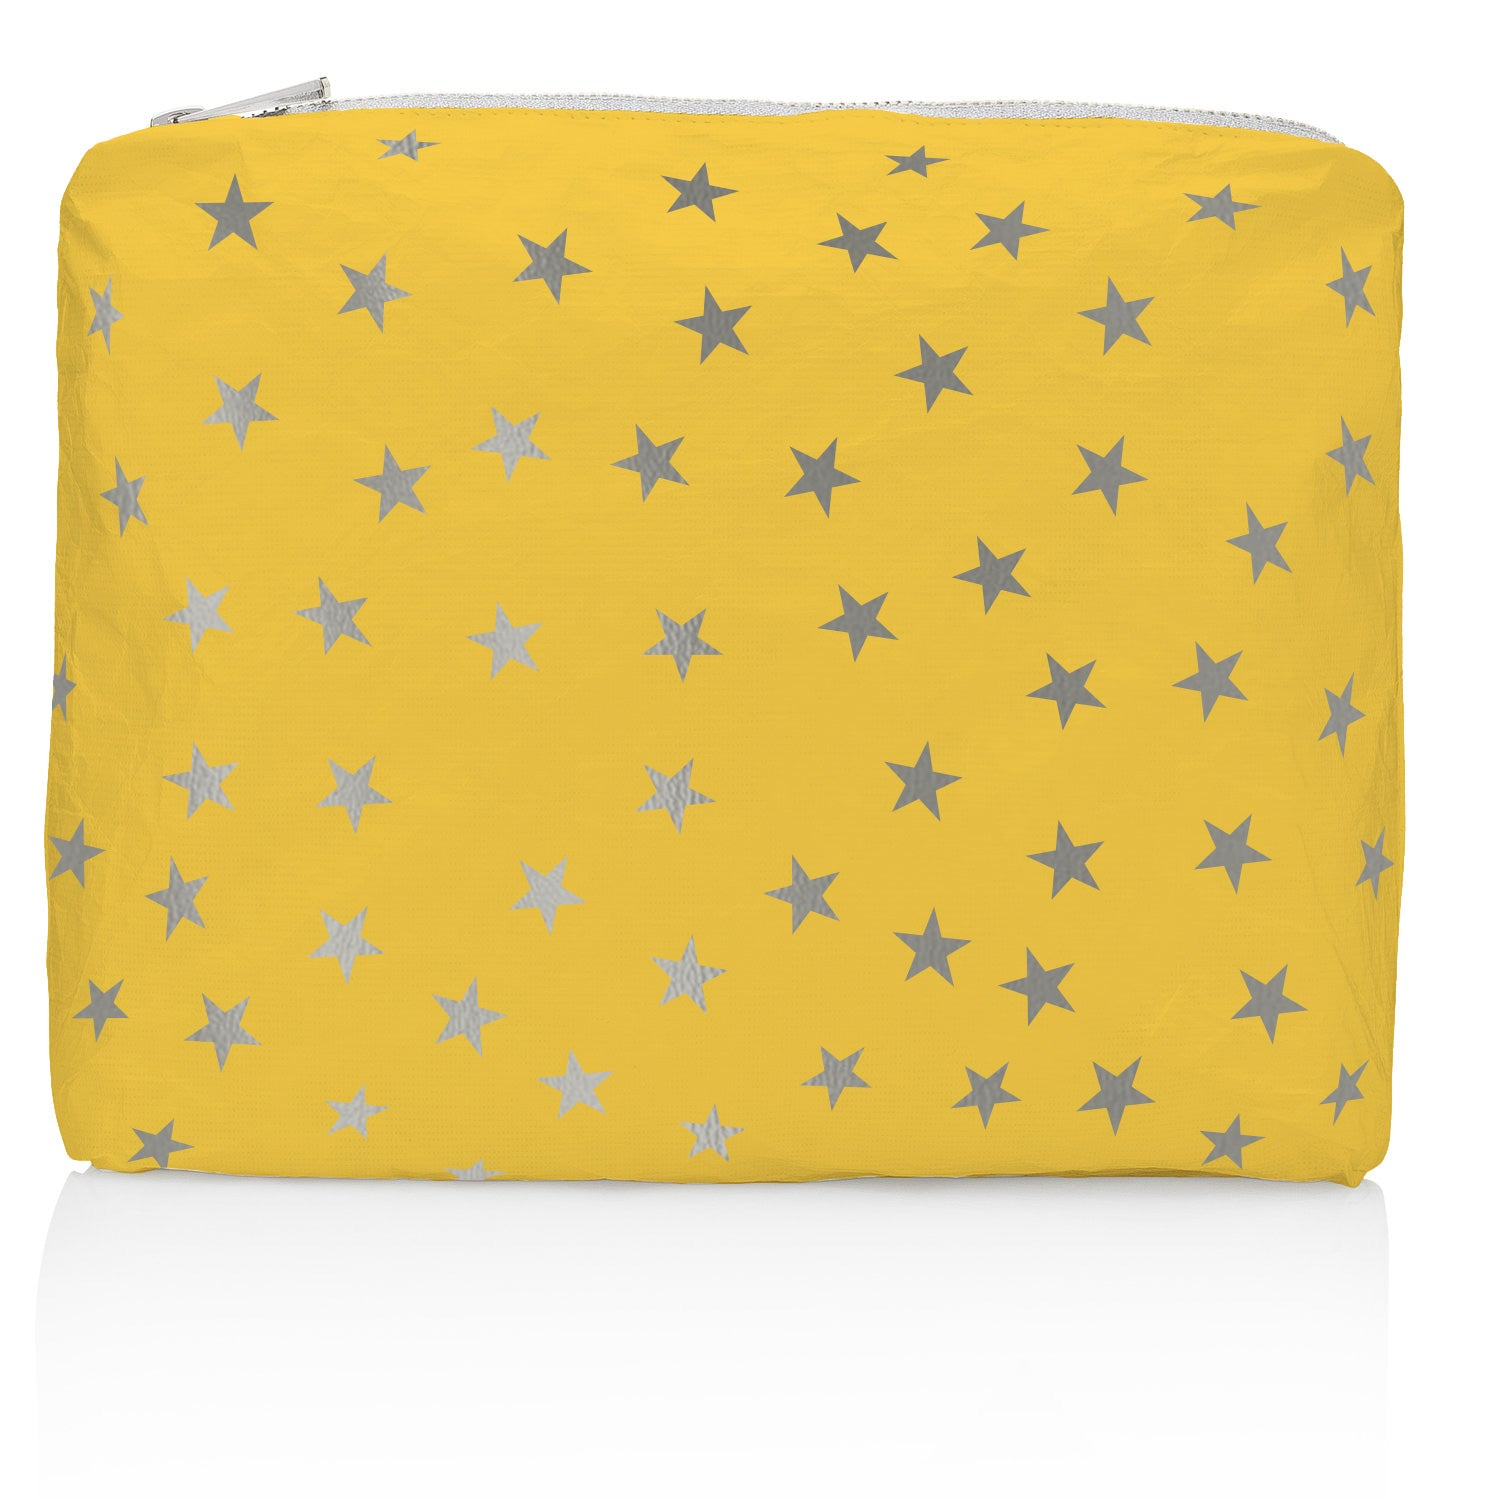 Travel Pack - Makeup Pouch - Beach Pack - Medium Pack - Island Sunshine with Myriad Metallic Silver Stars